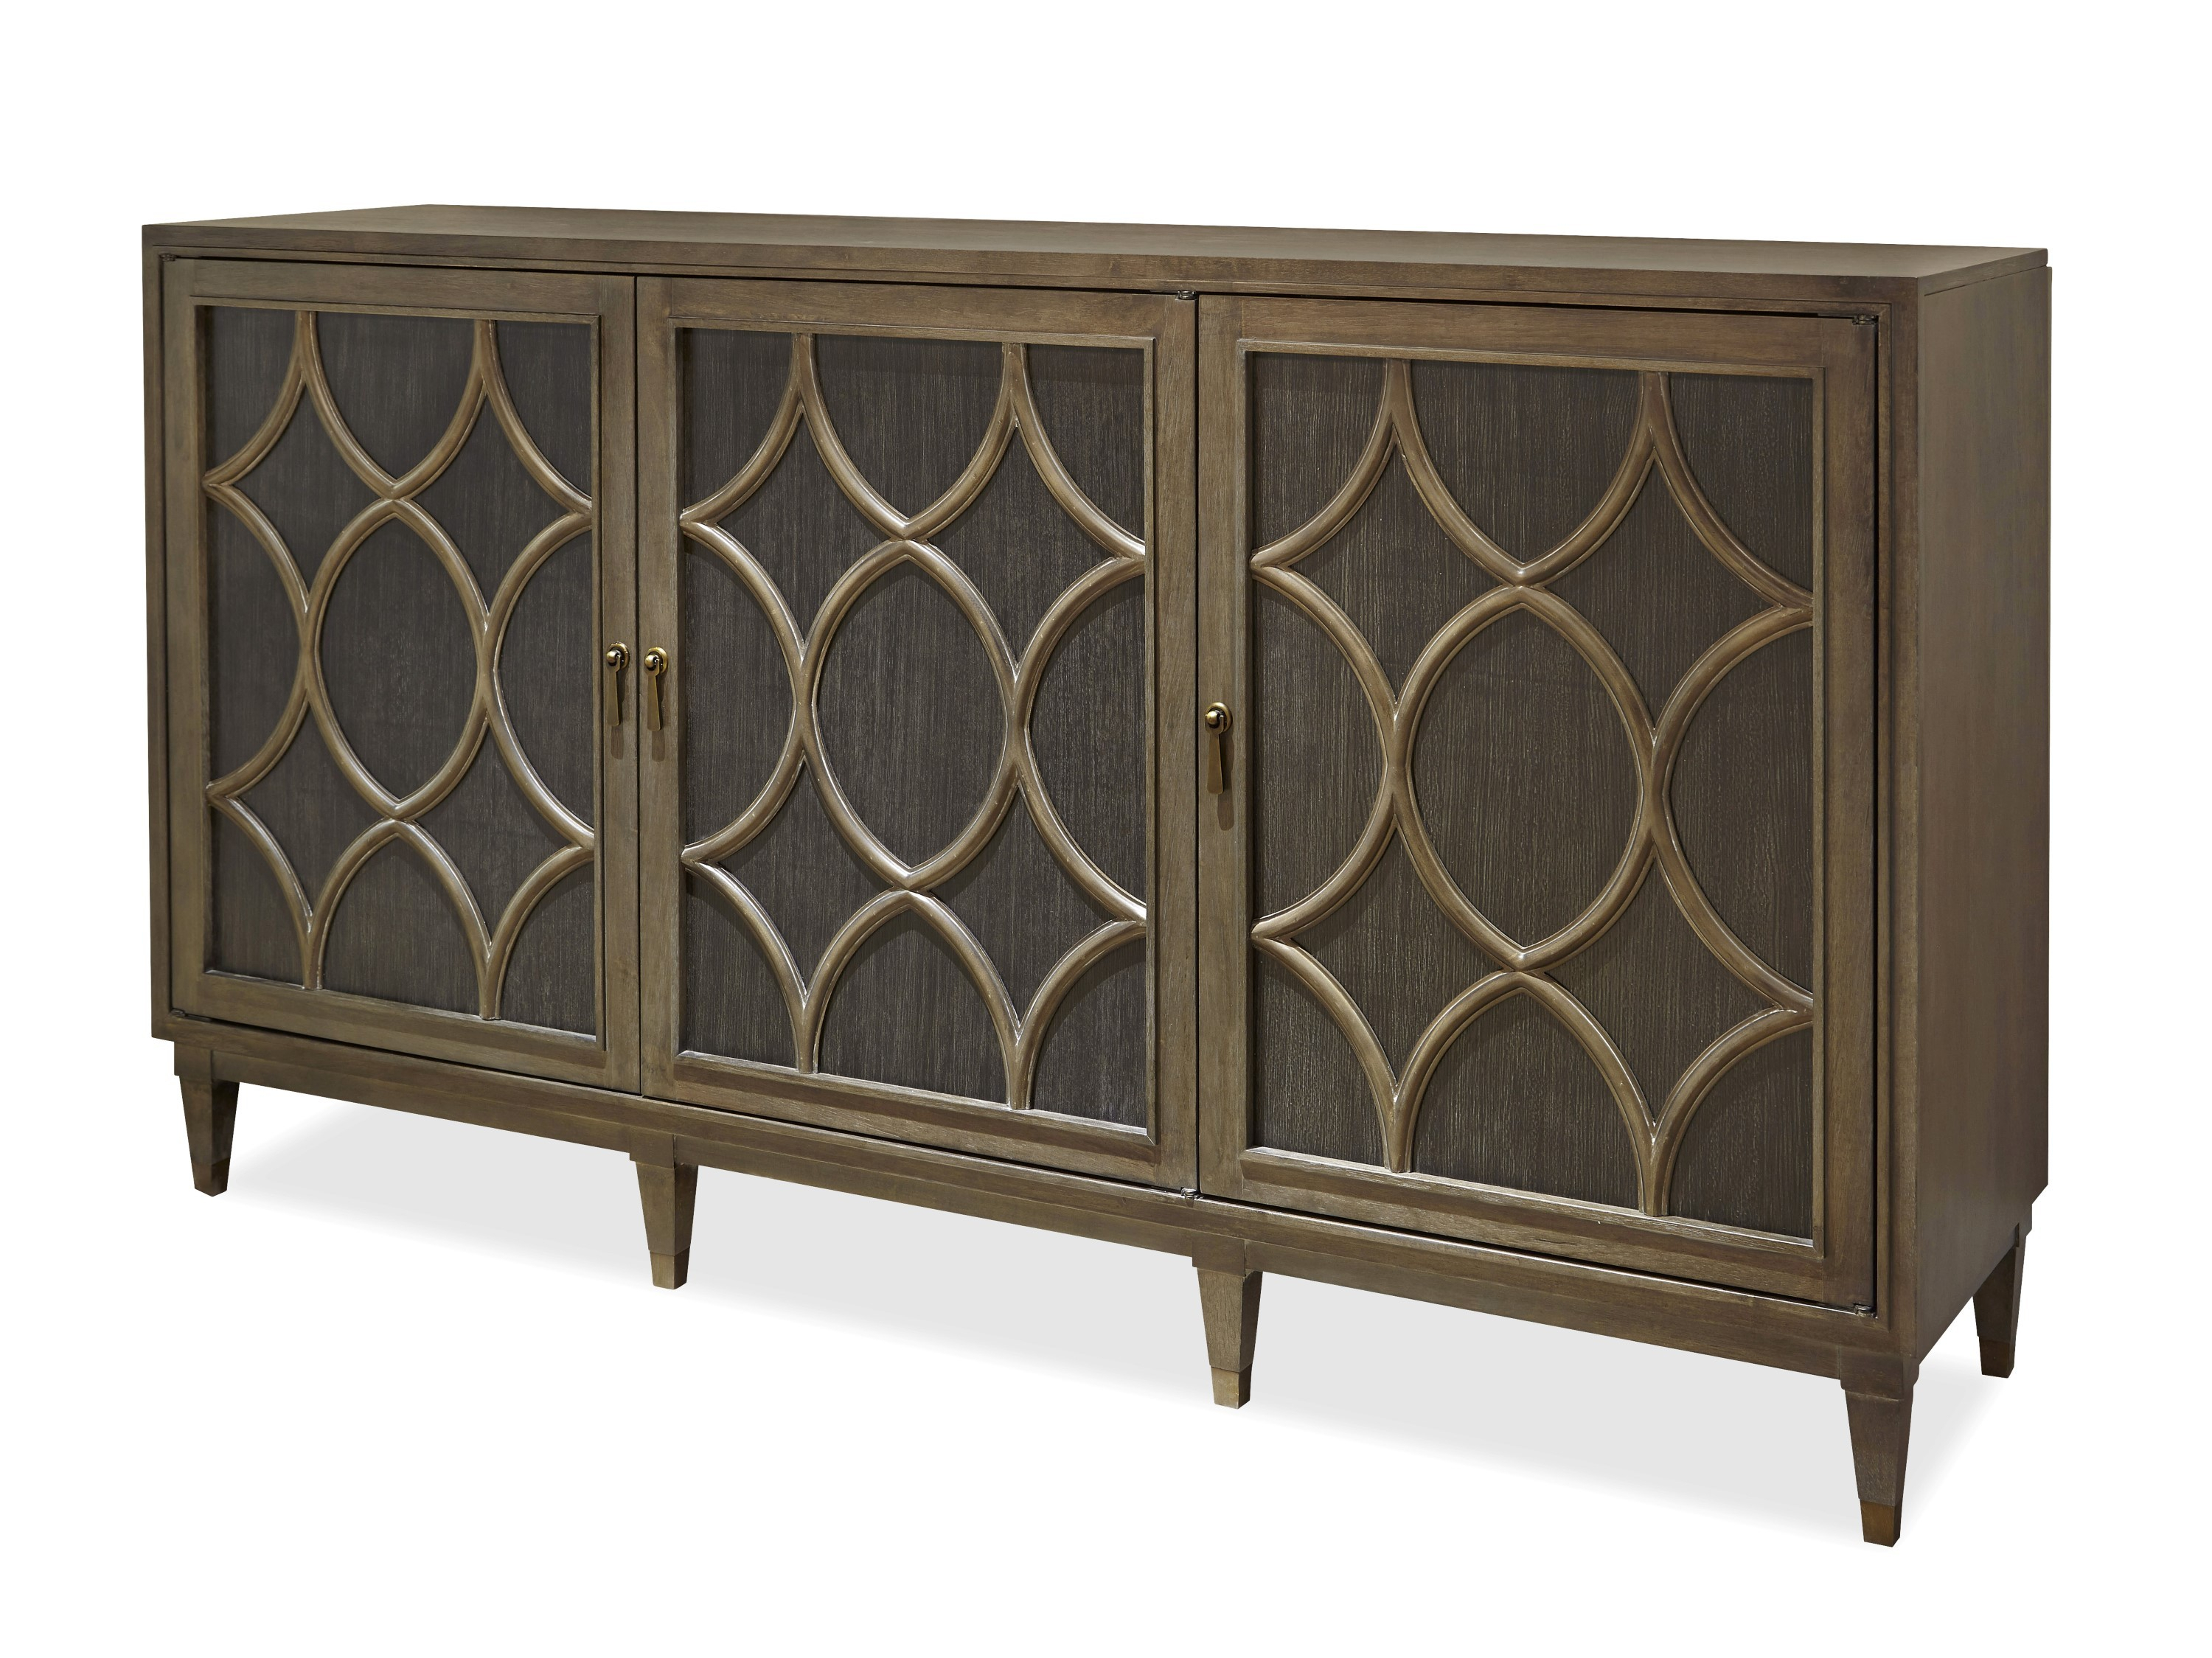 Sideboard In Most Up To Date Pineville Dining Sideboards (View 7 of 20)